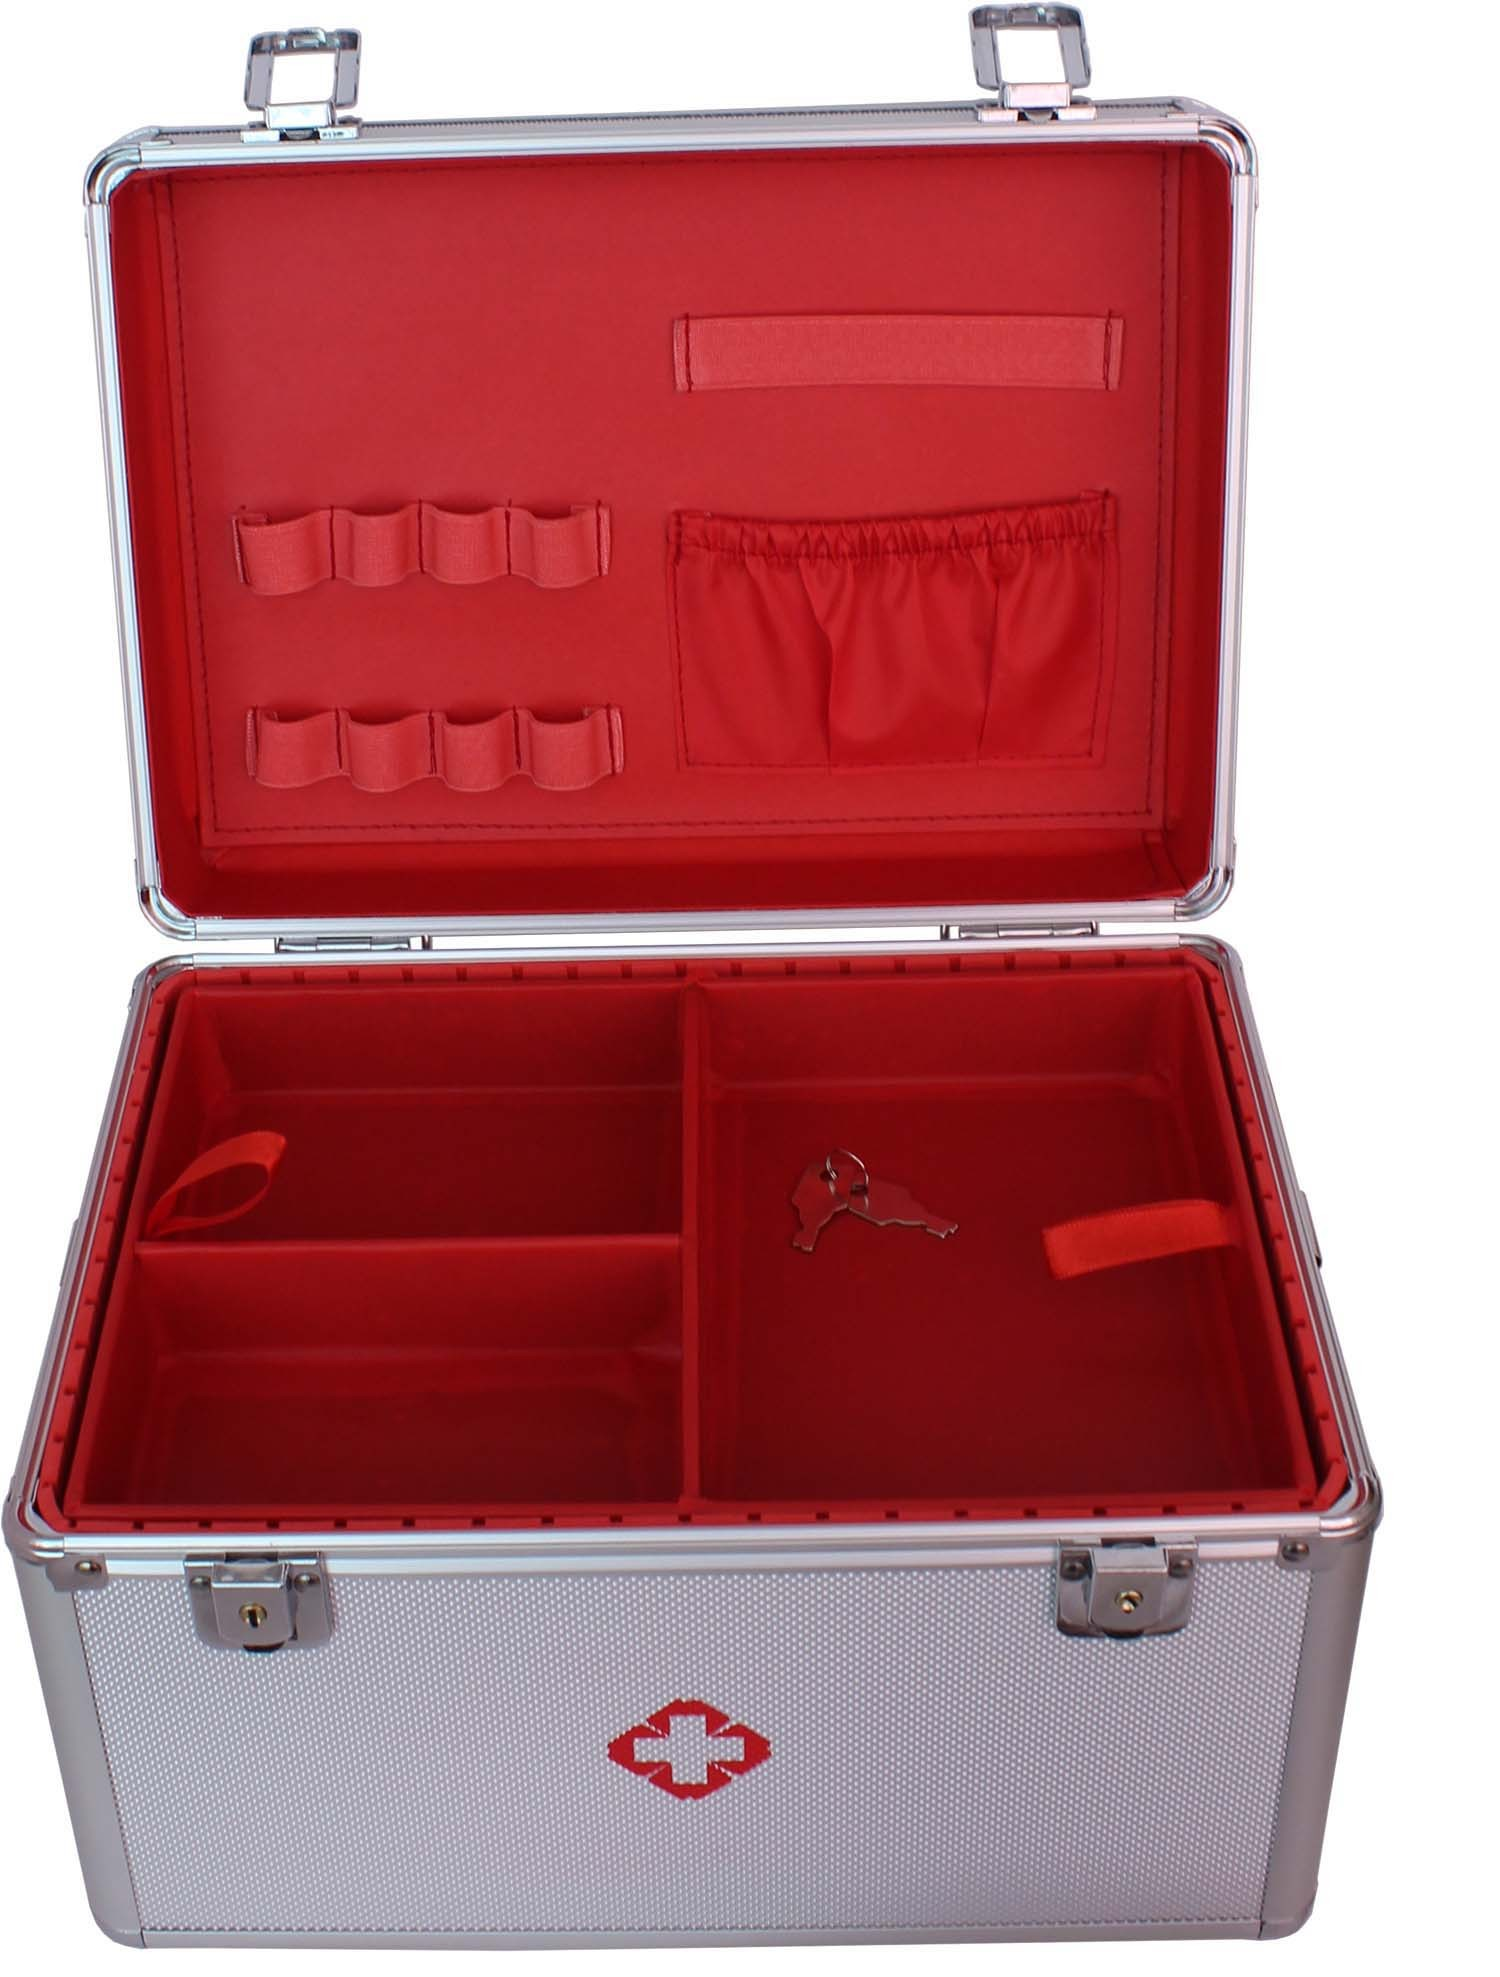 First Aid case with removable tray